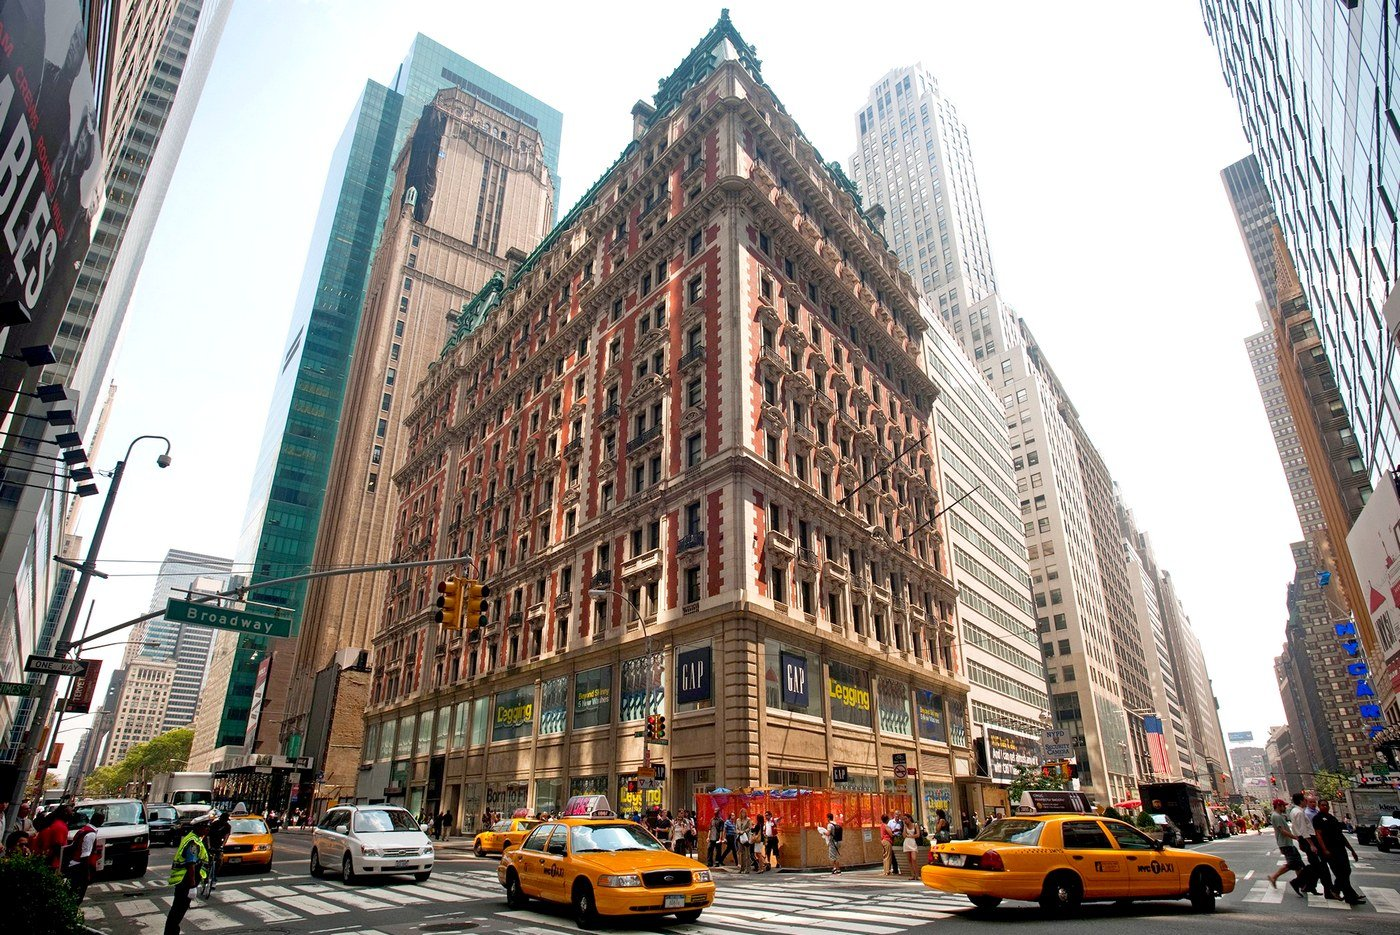 New York Hotels On 5th Avenue